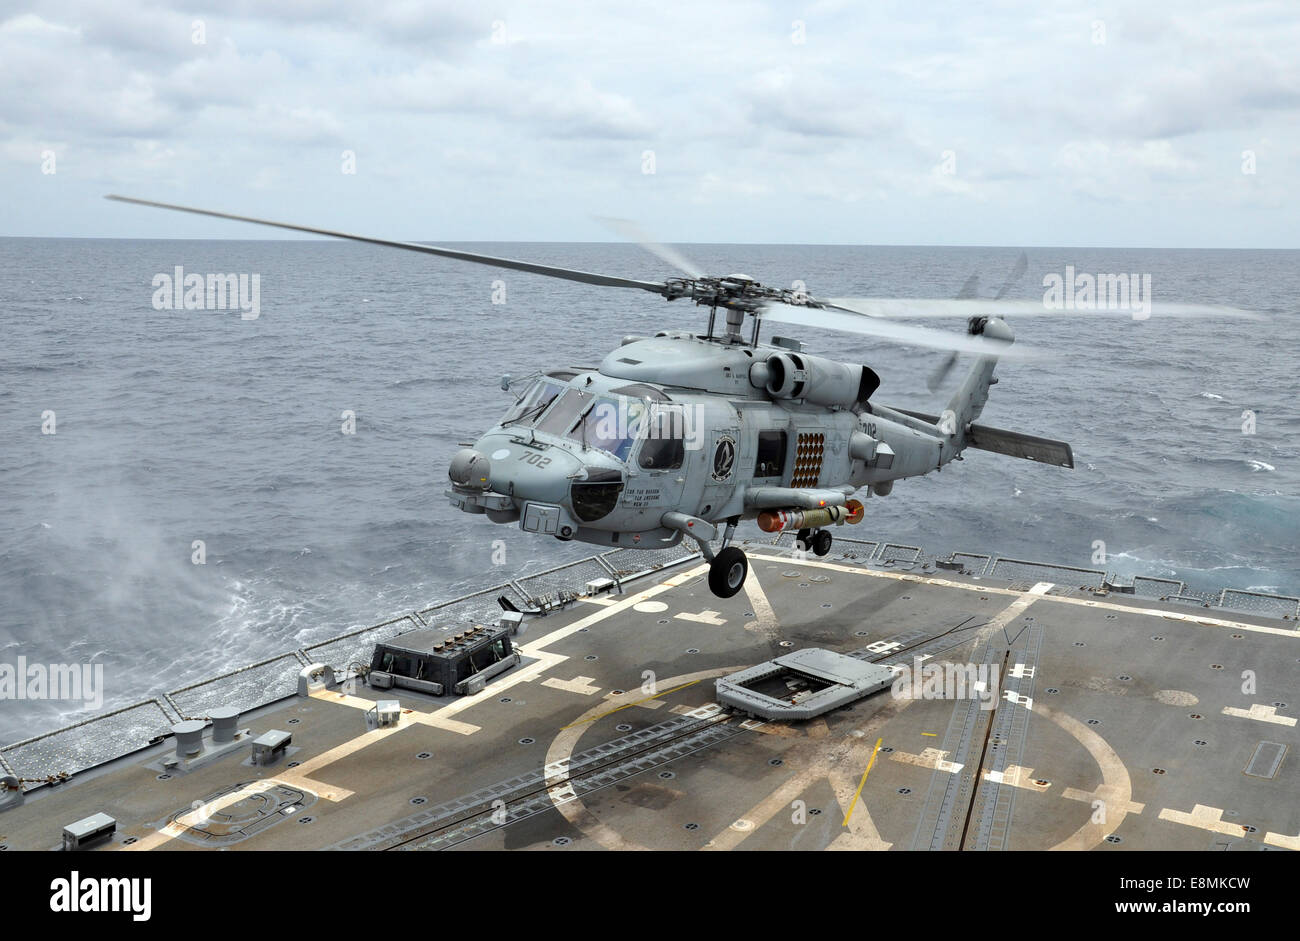 South China Sea, August 6, 2014 - An MH-60R Sea Hawk helicopter lifts off from the guided-missile destroyer USS - Stock Image